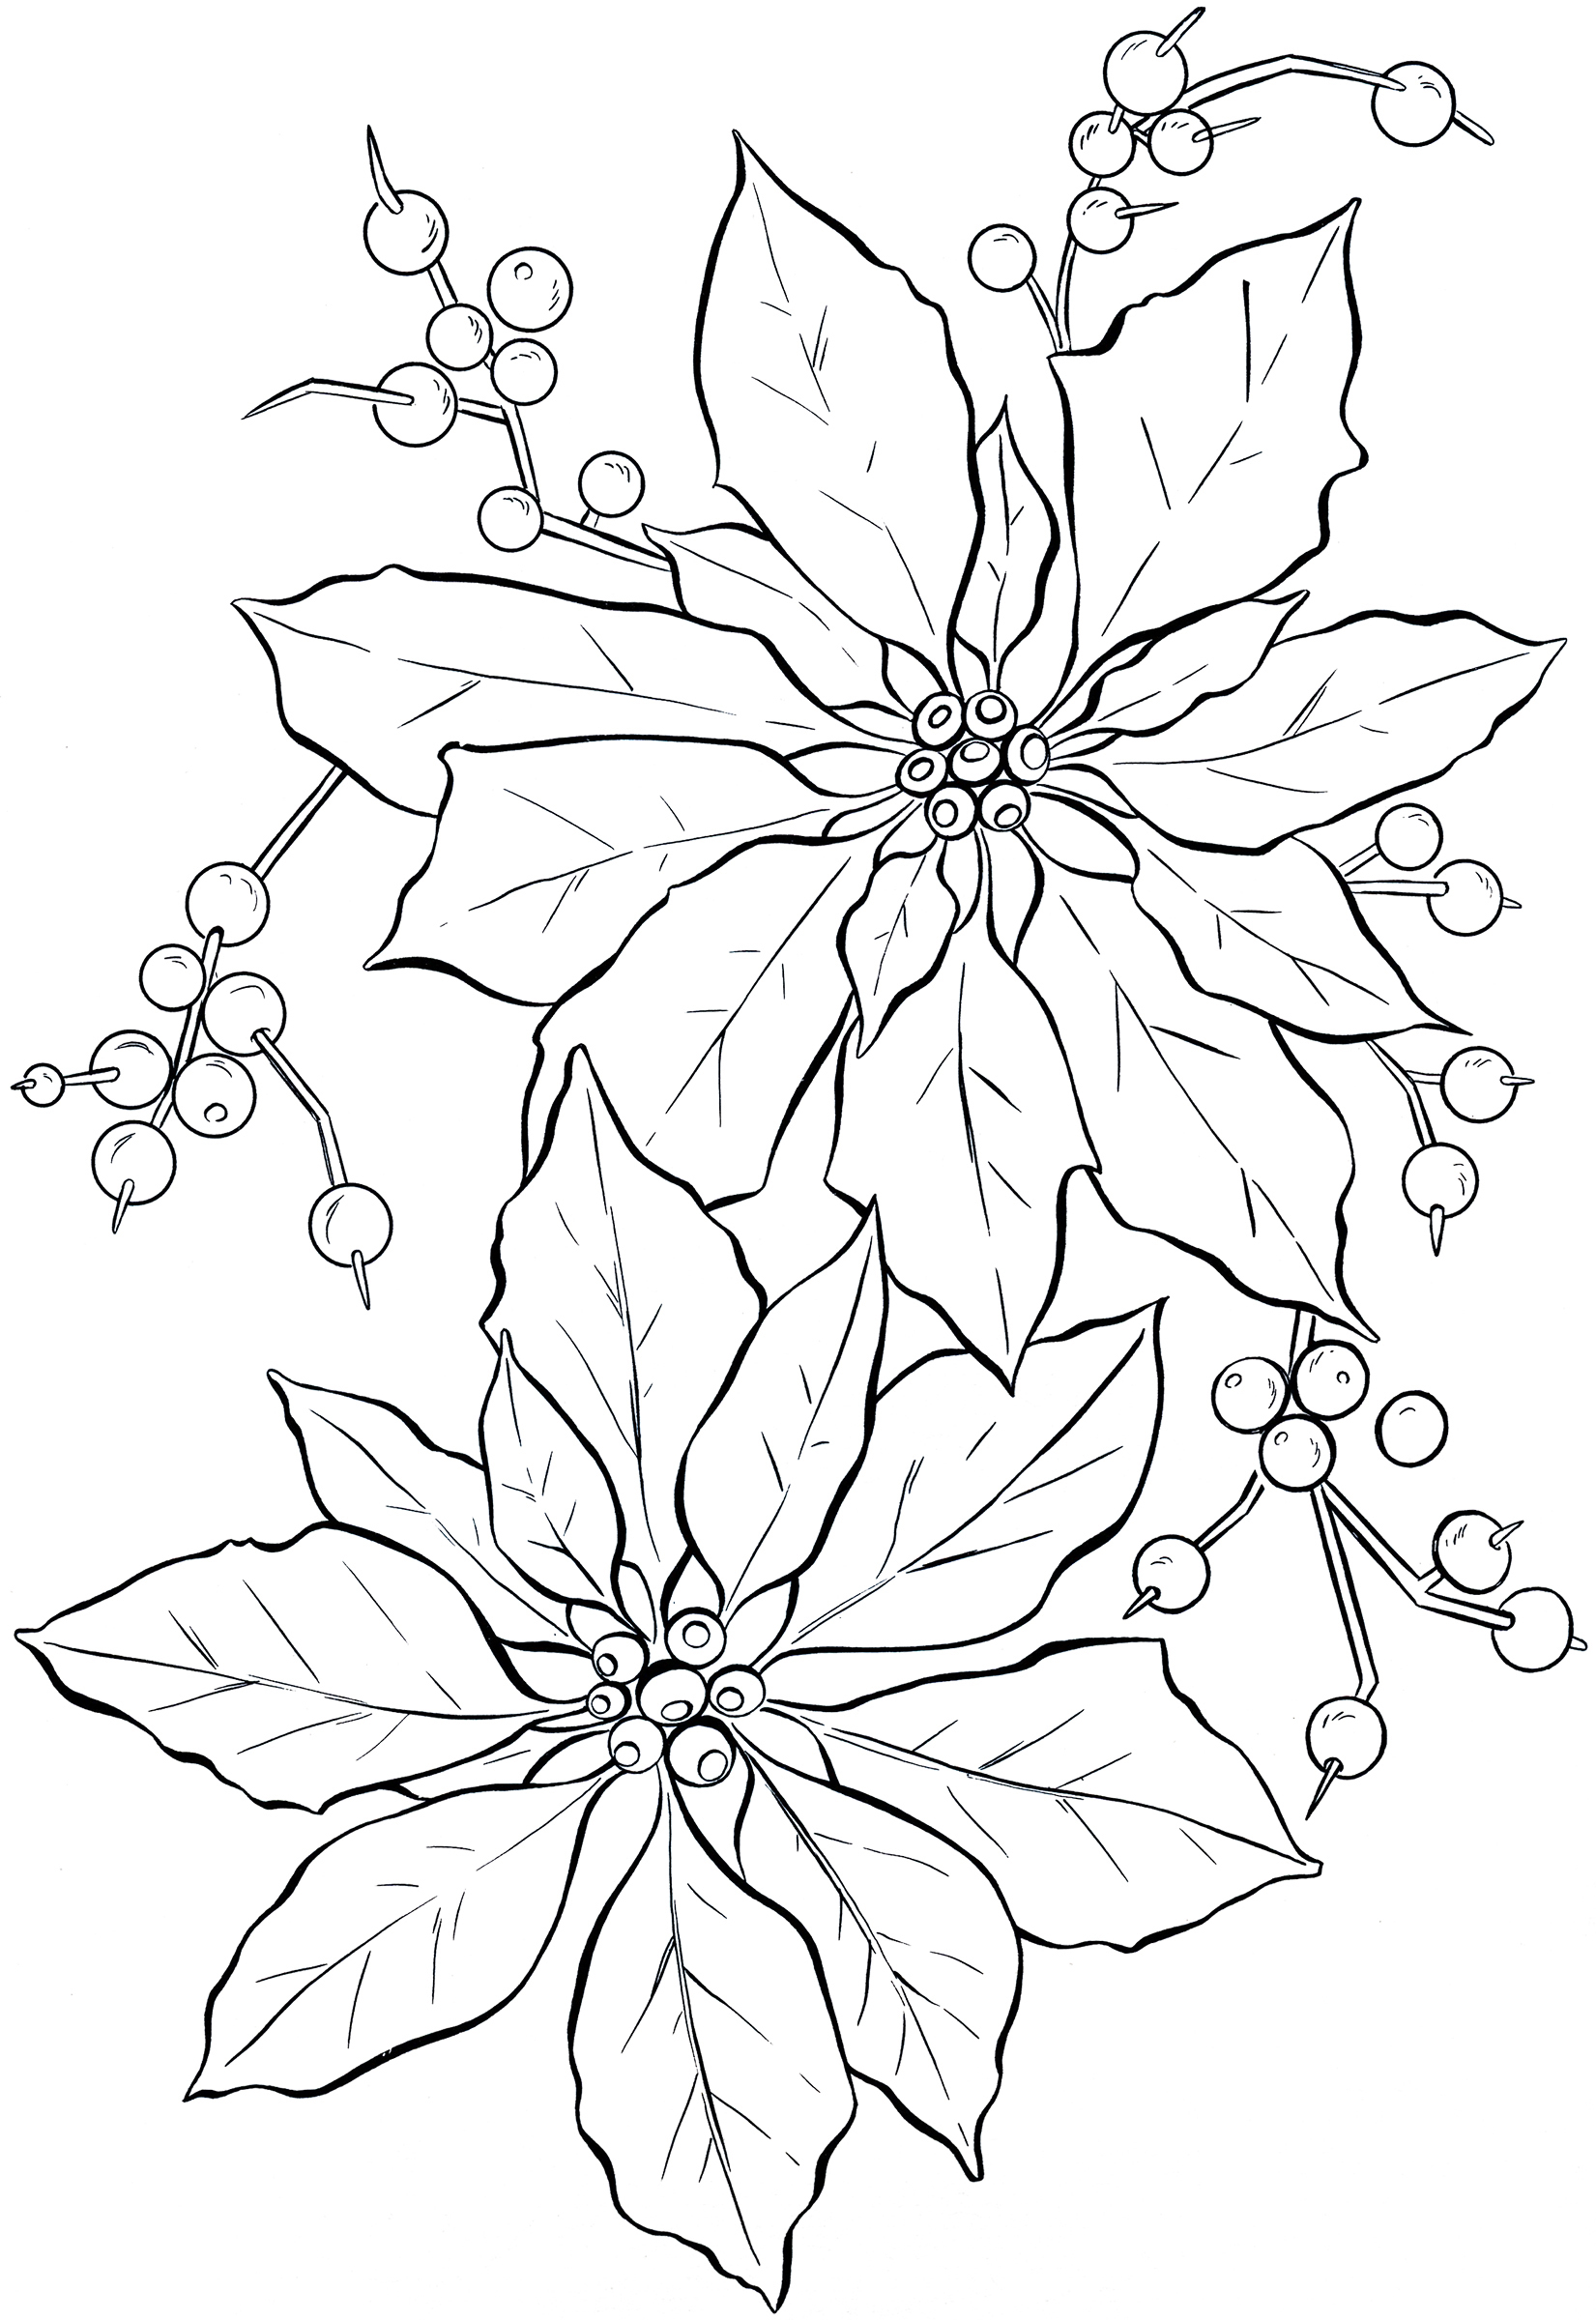 christmas art coloring pages - photo#50